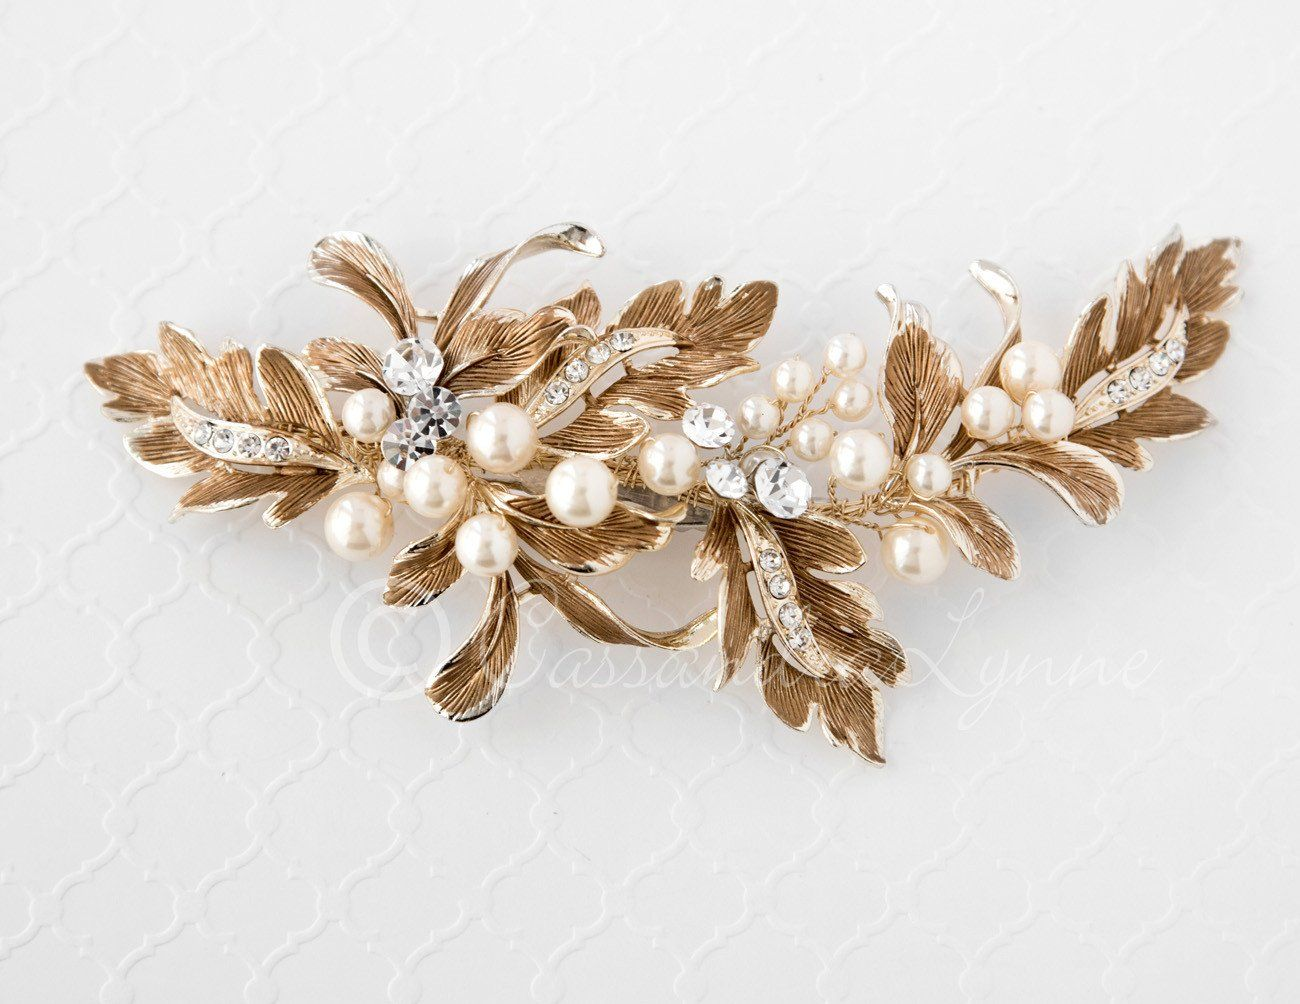 Wedding Hair Clip of Grecian Leaves and Pearls | Weddings, Wedding ...